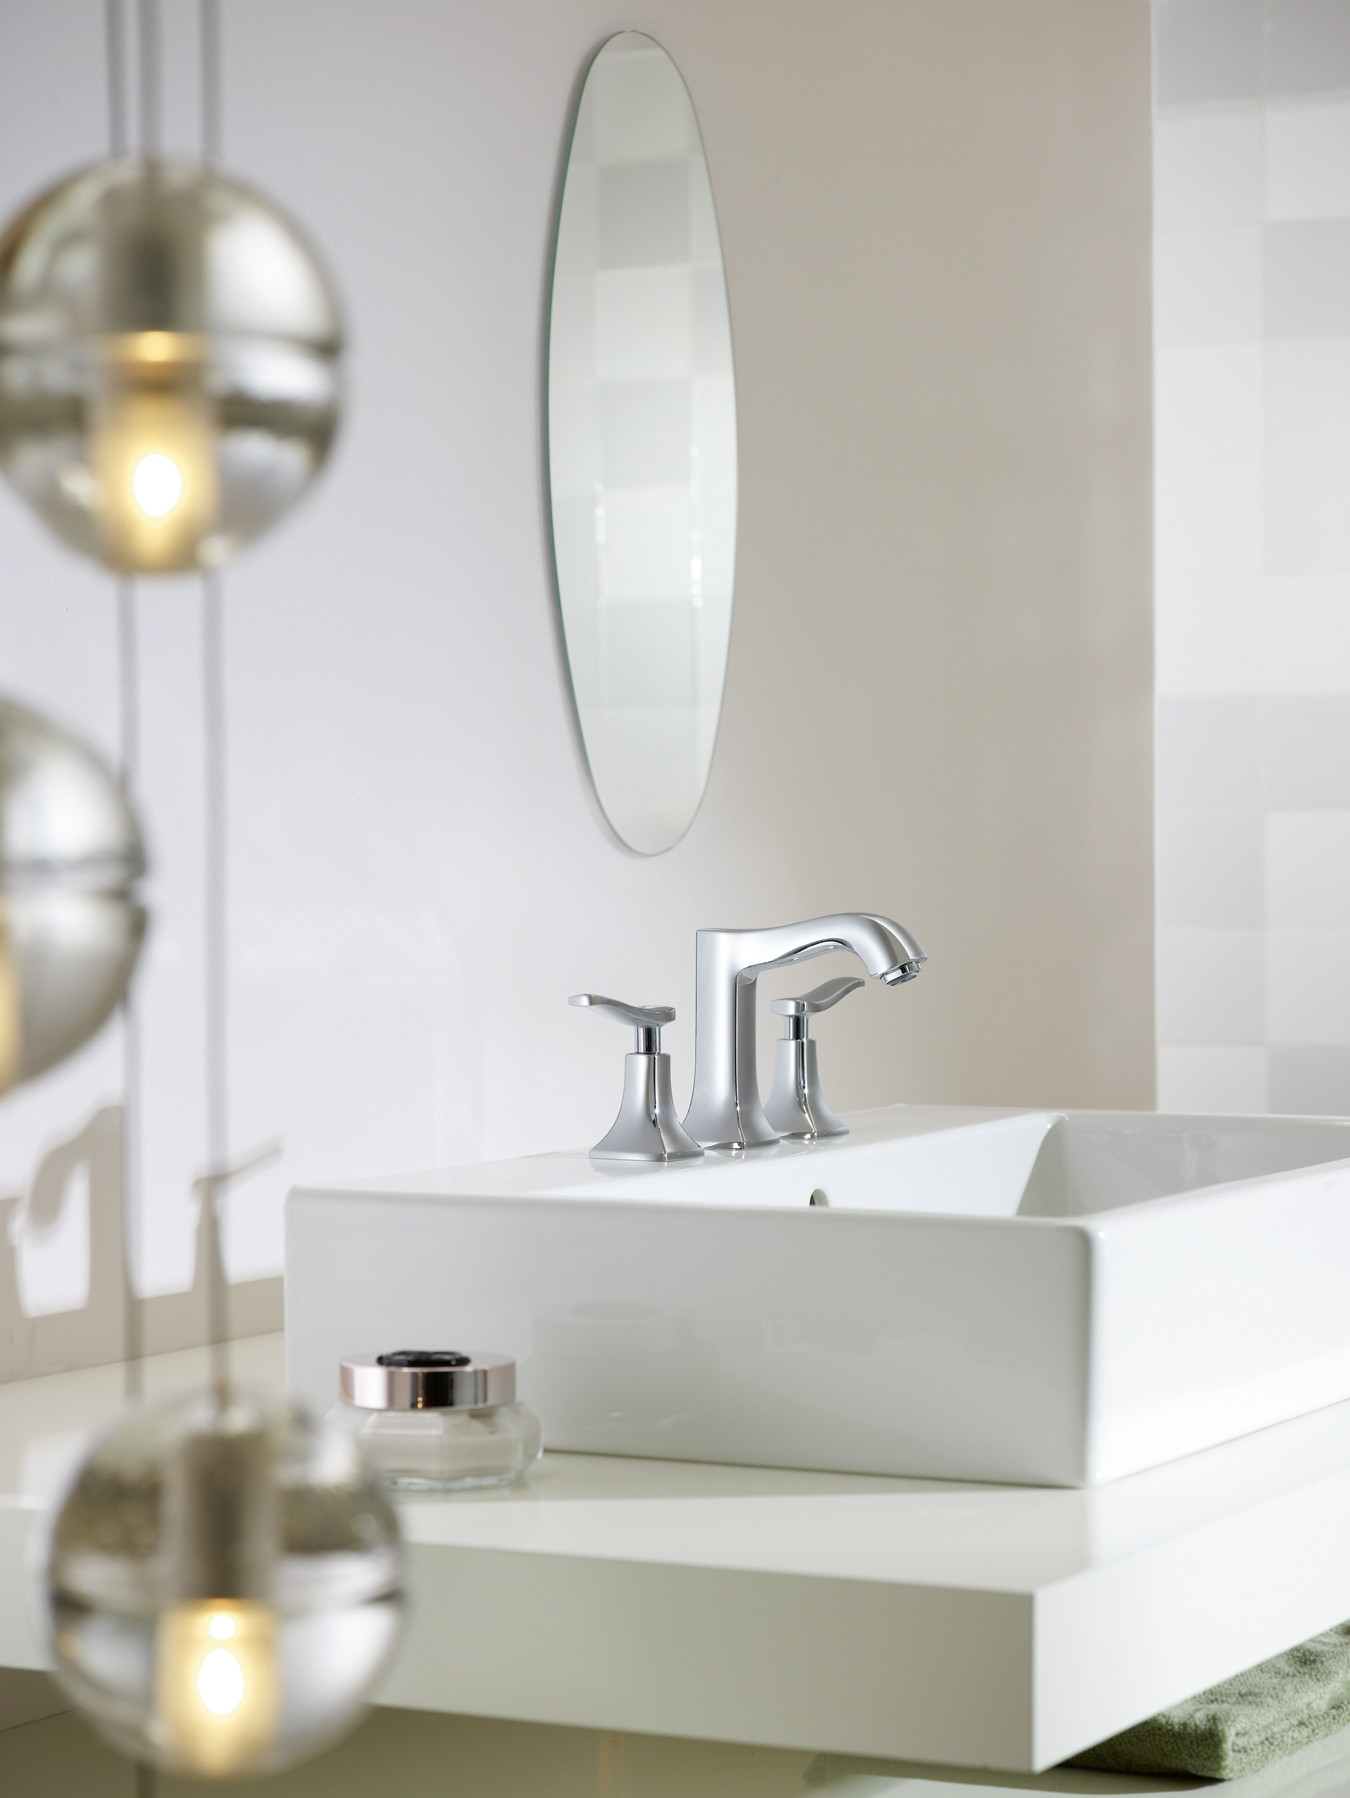 Bath4All - Hansgrohe 31073001 Chrome Metris C Bathroom Faucet ...